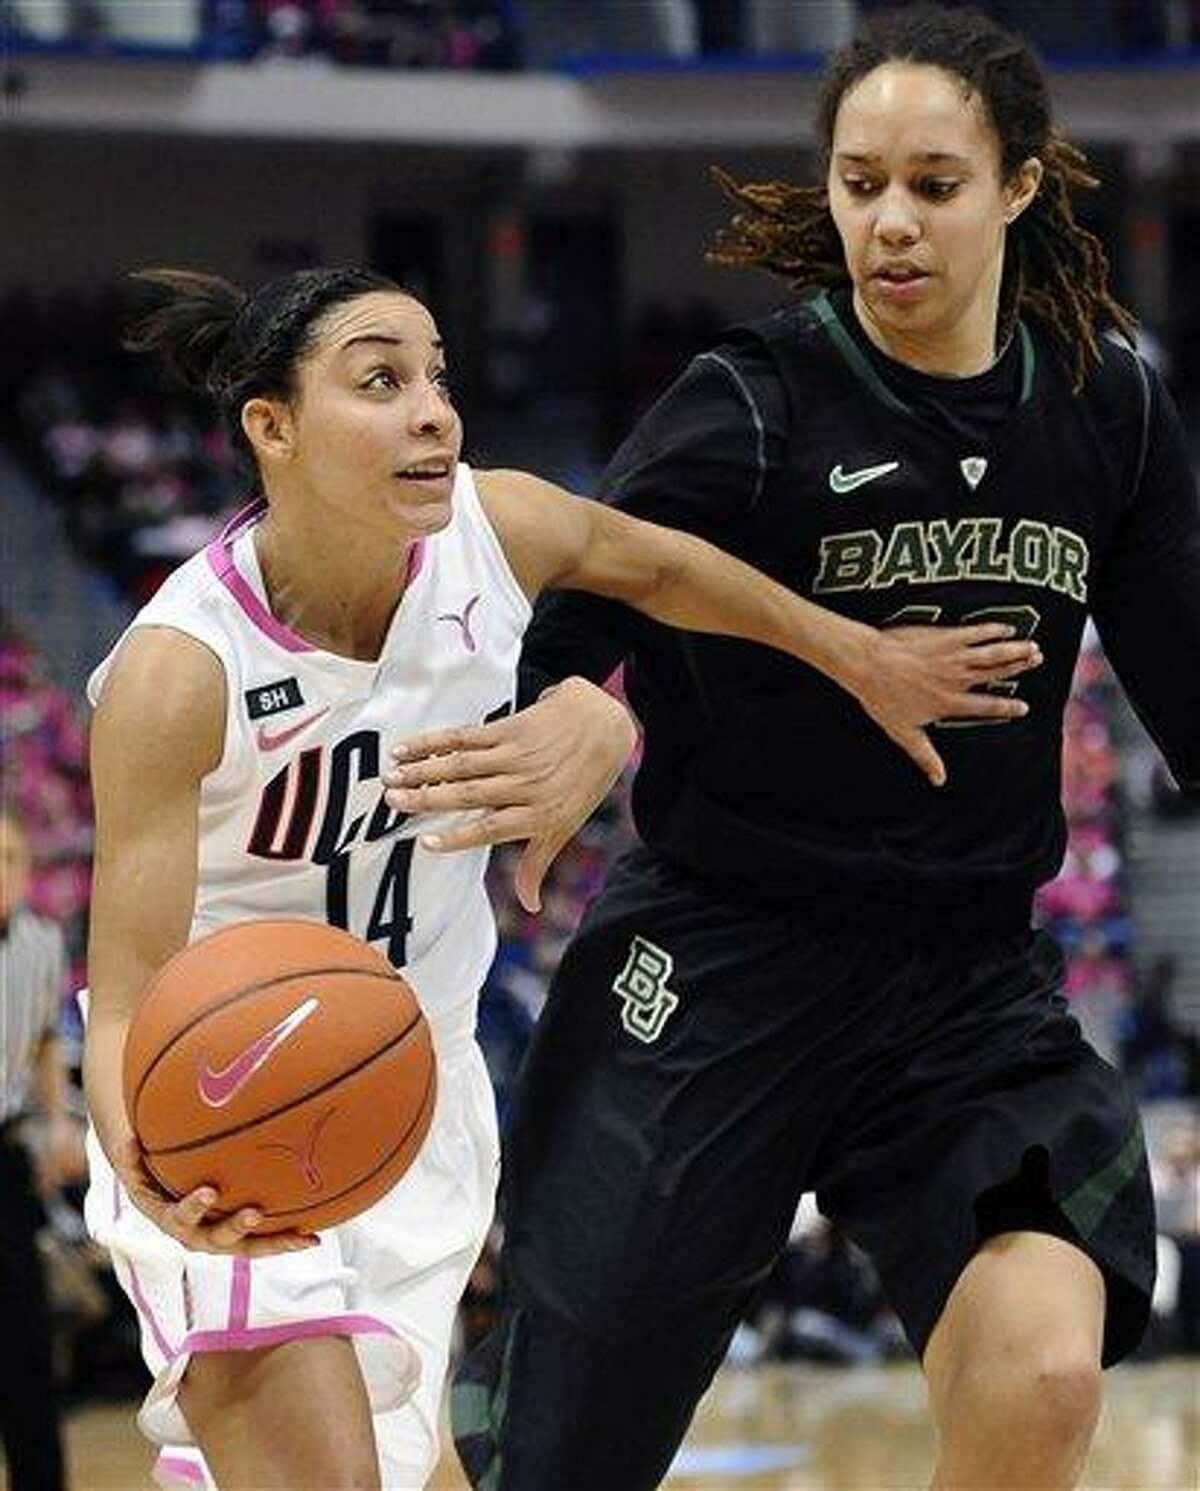 Connecticut's Bria Hartley, left, drives to the basket against Baylor's Brittney Griner during the first half of an NCAA college basketball game in Hartford, Conn., Monday, Feb. 18, 2013. (AP Photo/Jessica Hill)